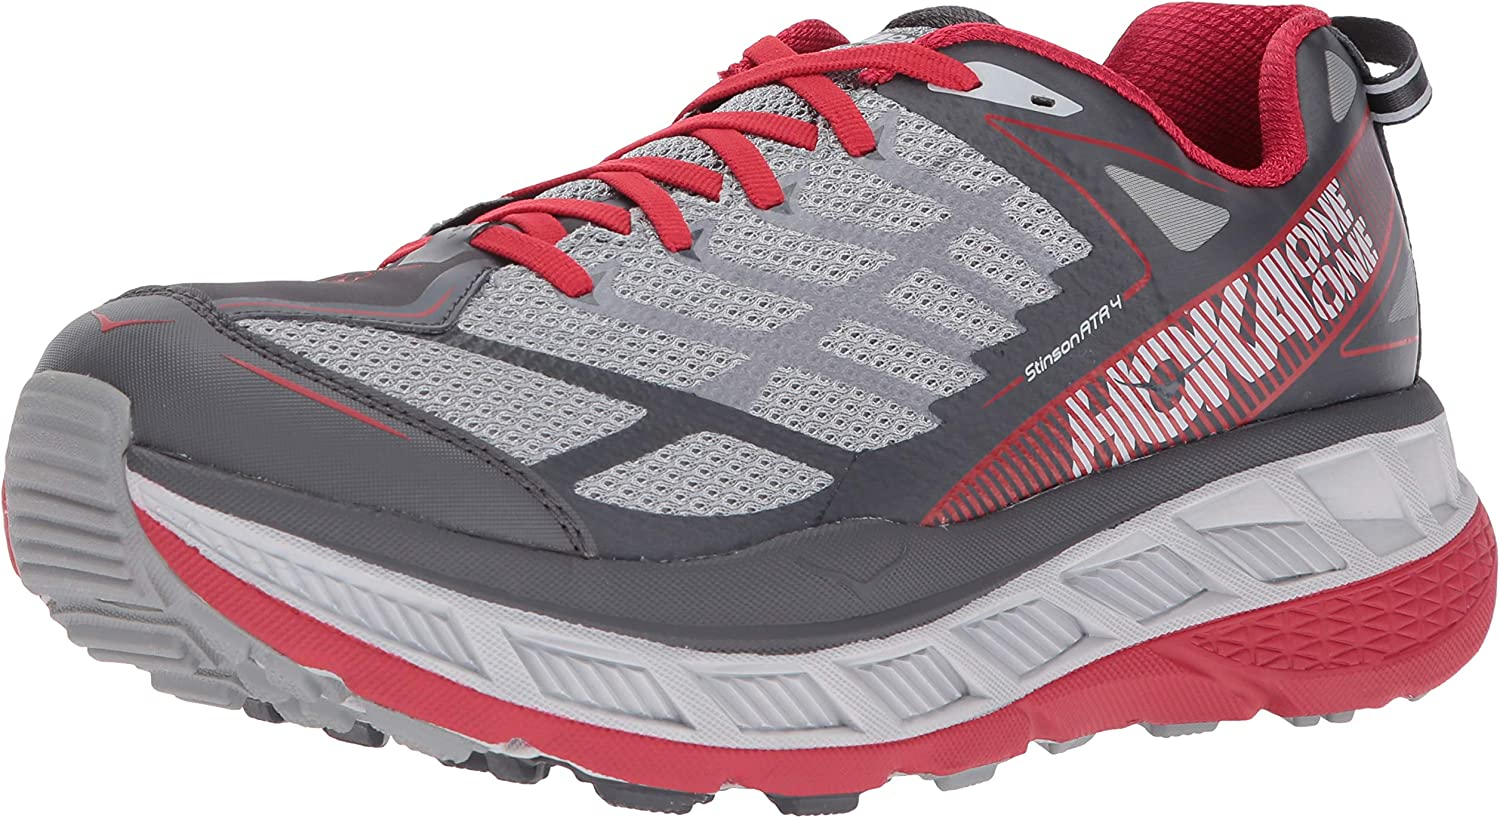 HOKA ONE ONE Mens Stinson ATR 4 Running Shoe